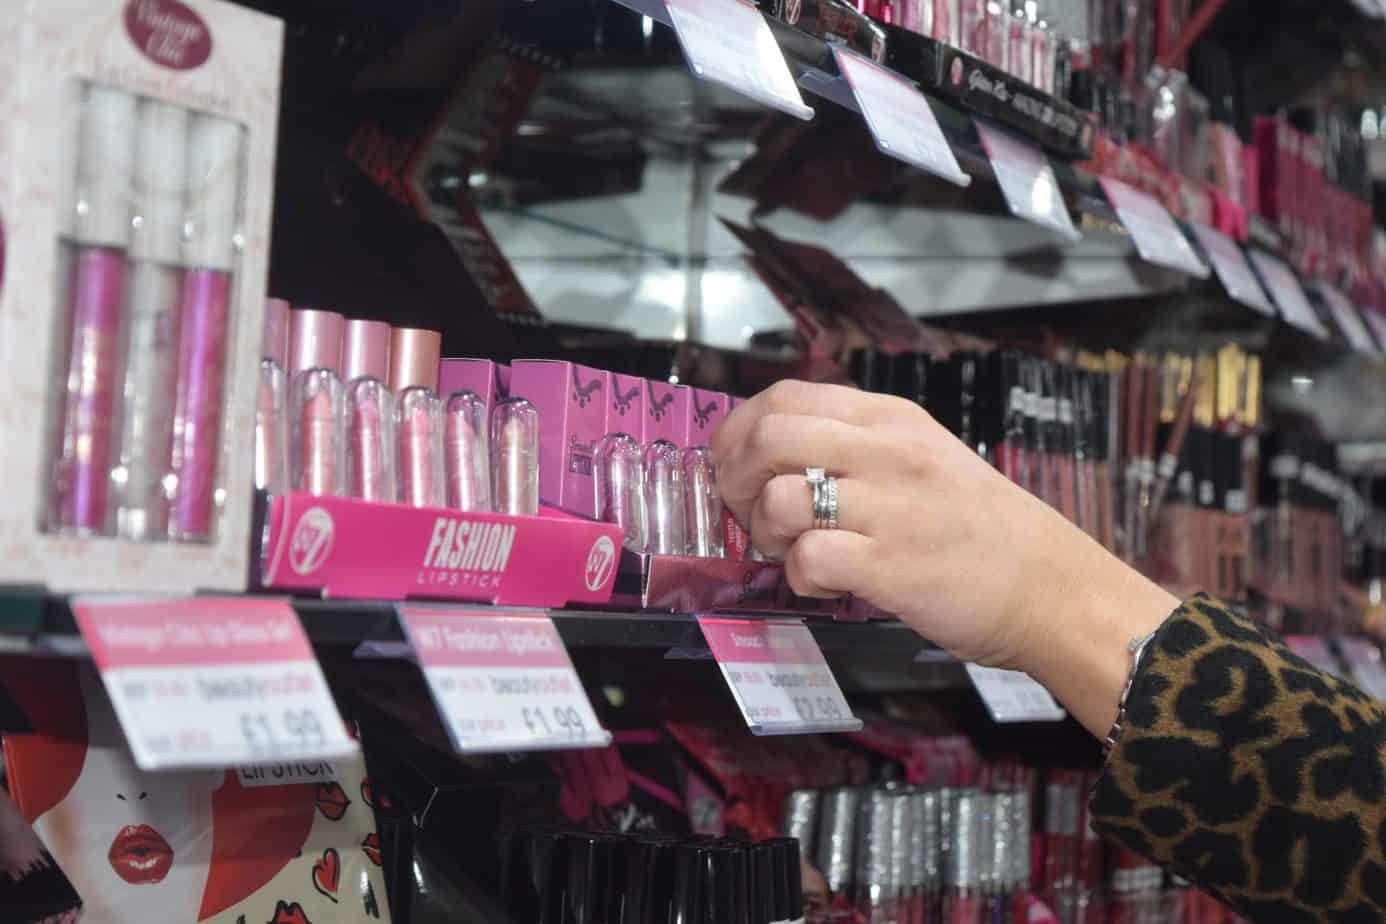 A close up of my hand selecting some lip glosses from the store